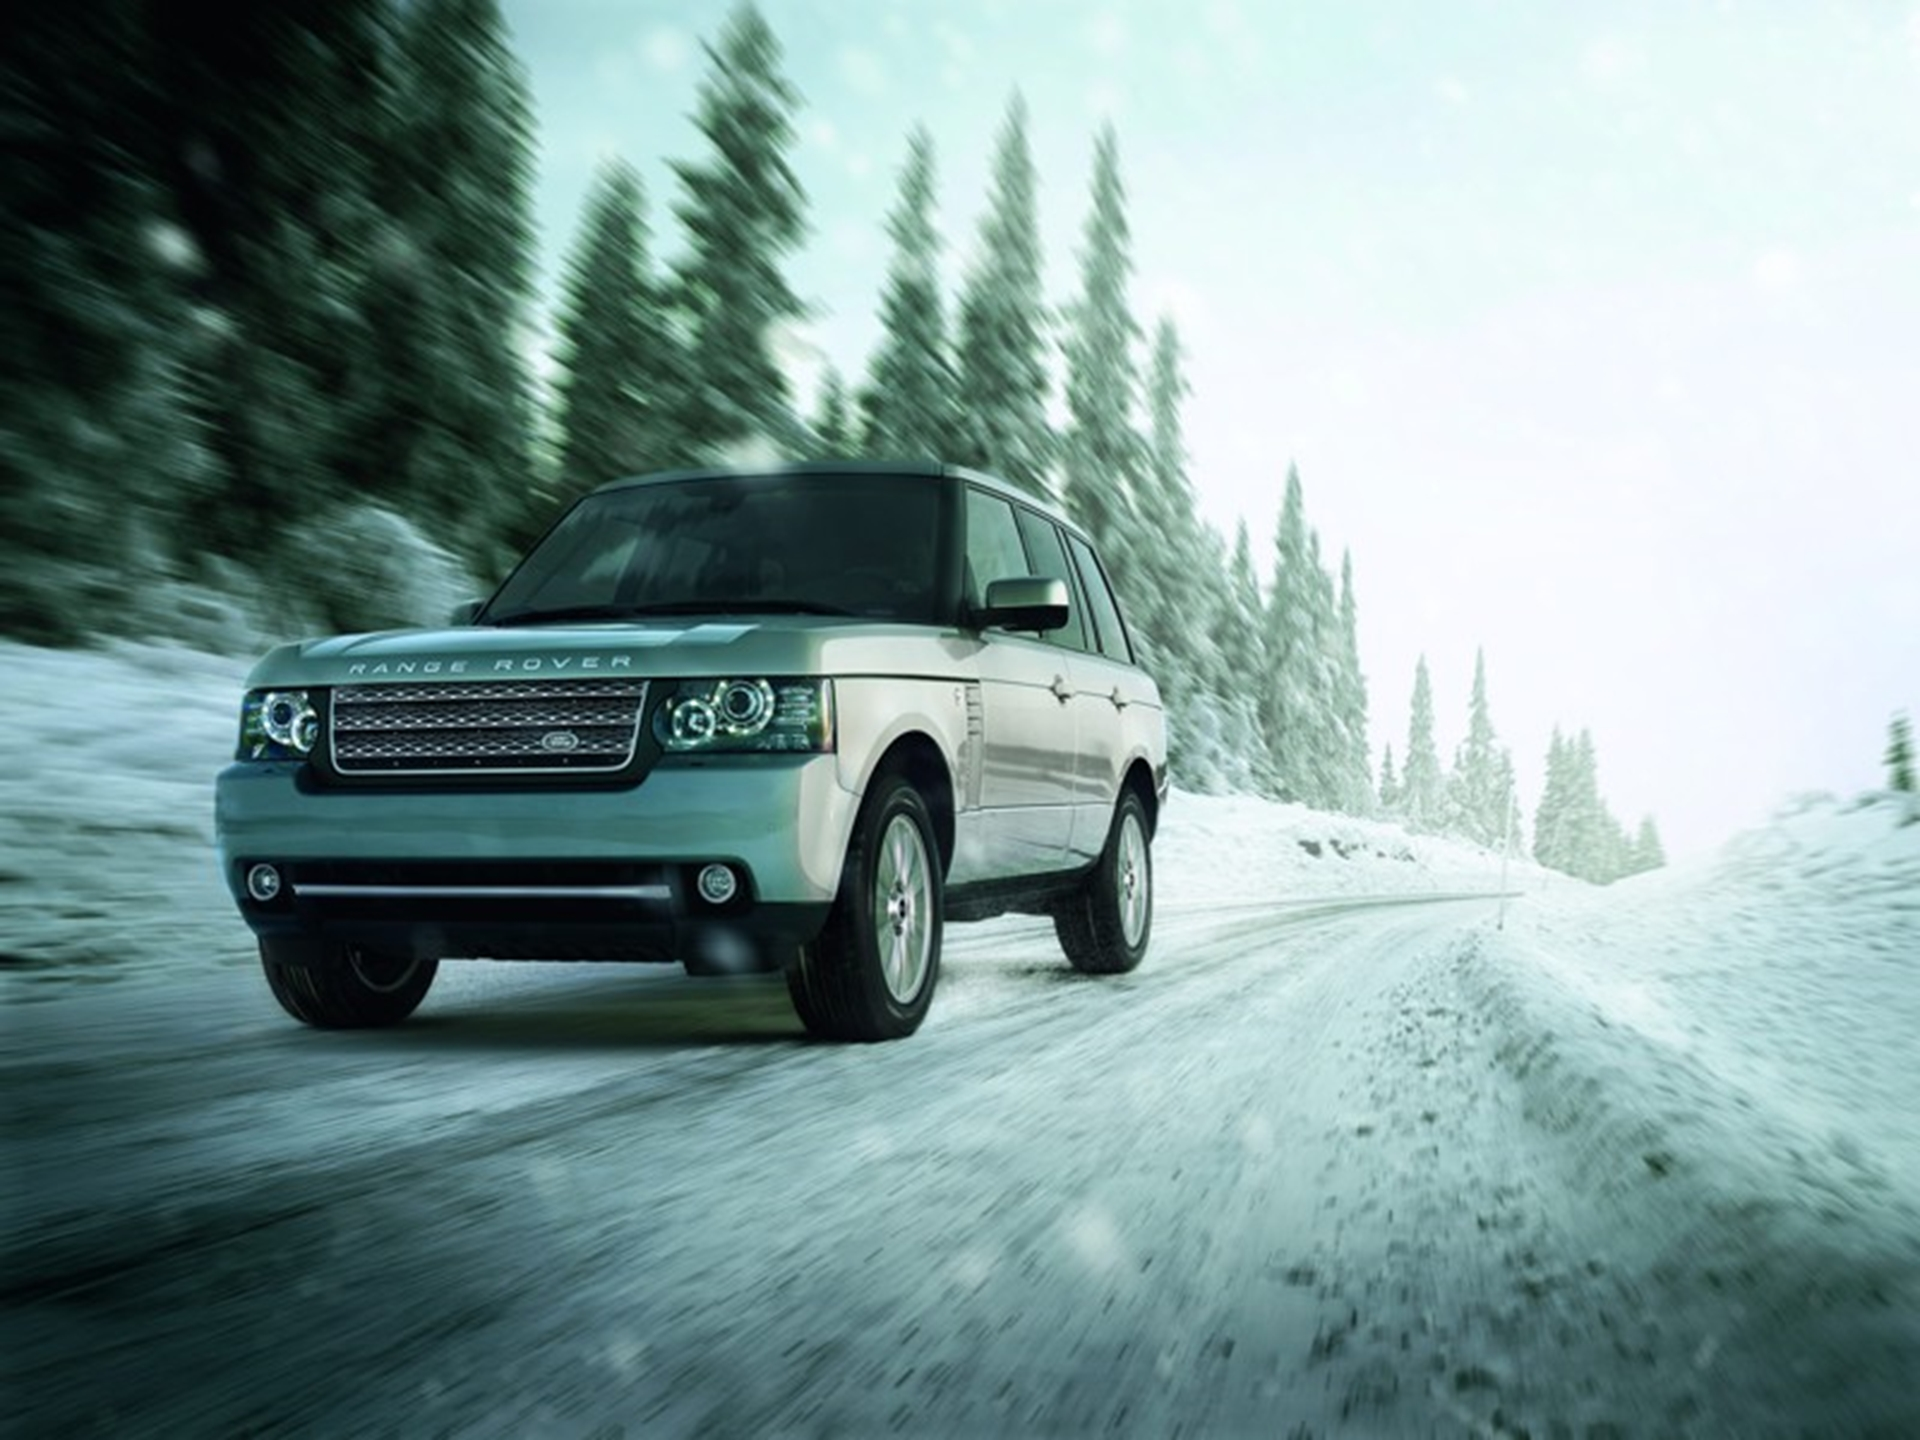 New 2012 Special Edition Range Rover models